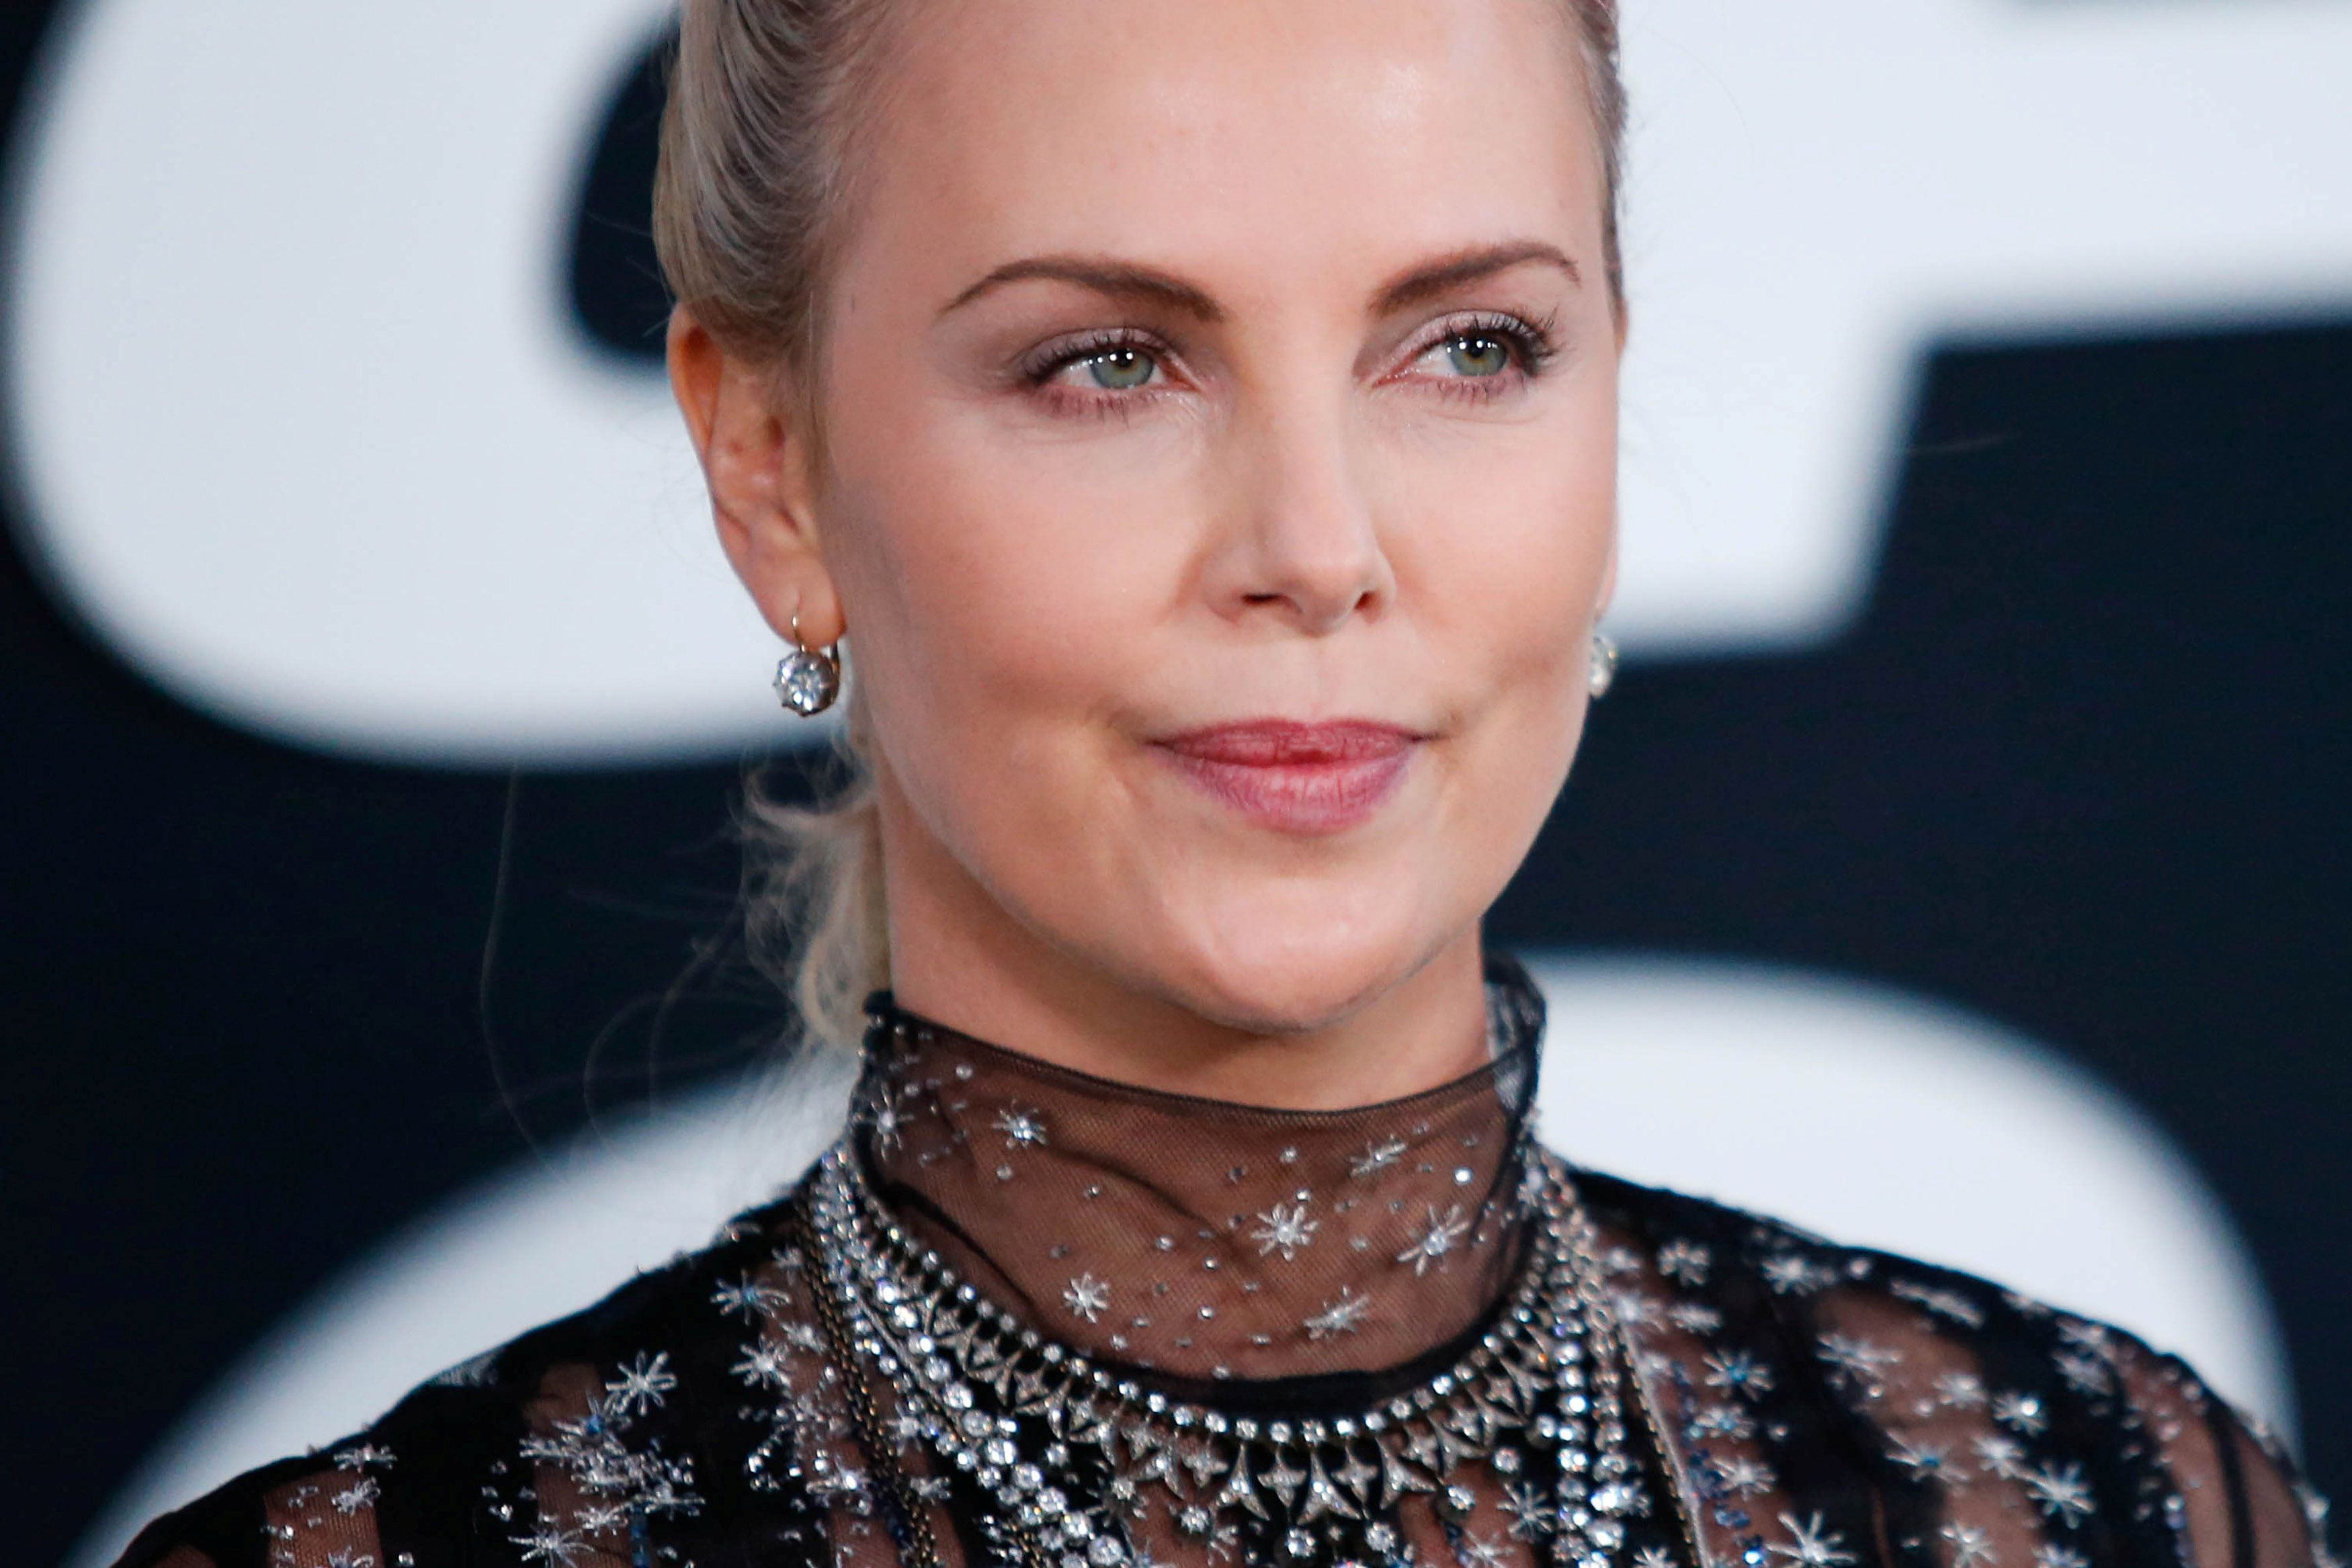 Actress Charlize Theron attends 'The Fate Of The Furious' New York premiere at Radio City Music Hall in New York, U.S. April 8, 2017. REUTERS/Eduardo Munoz